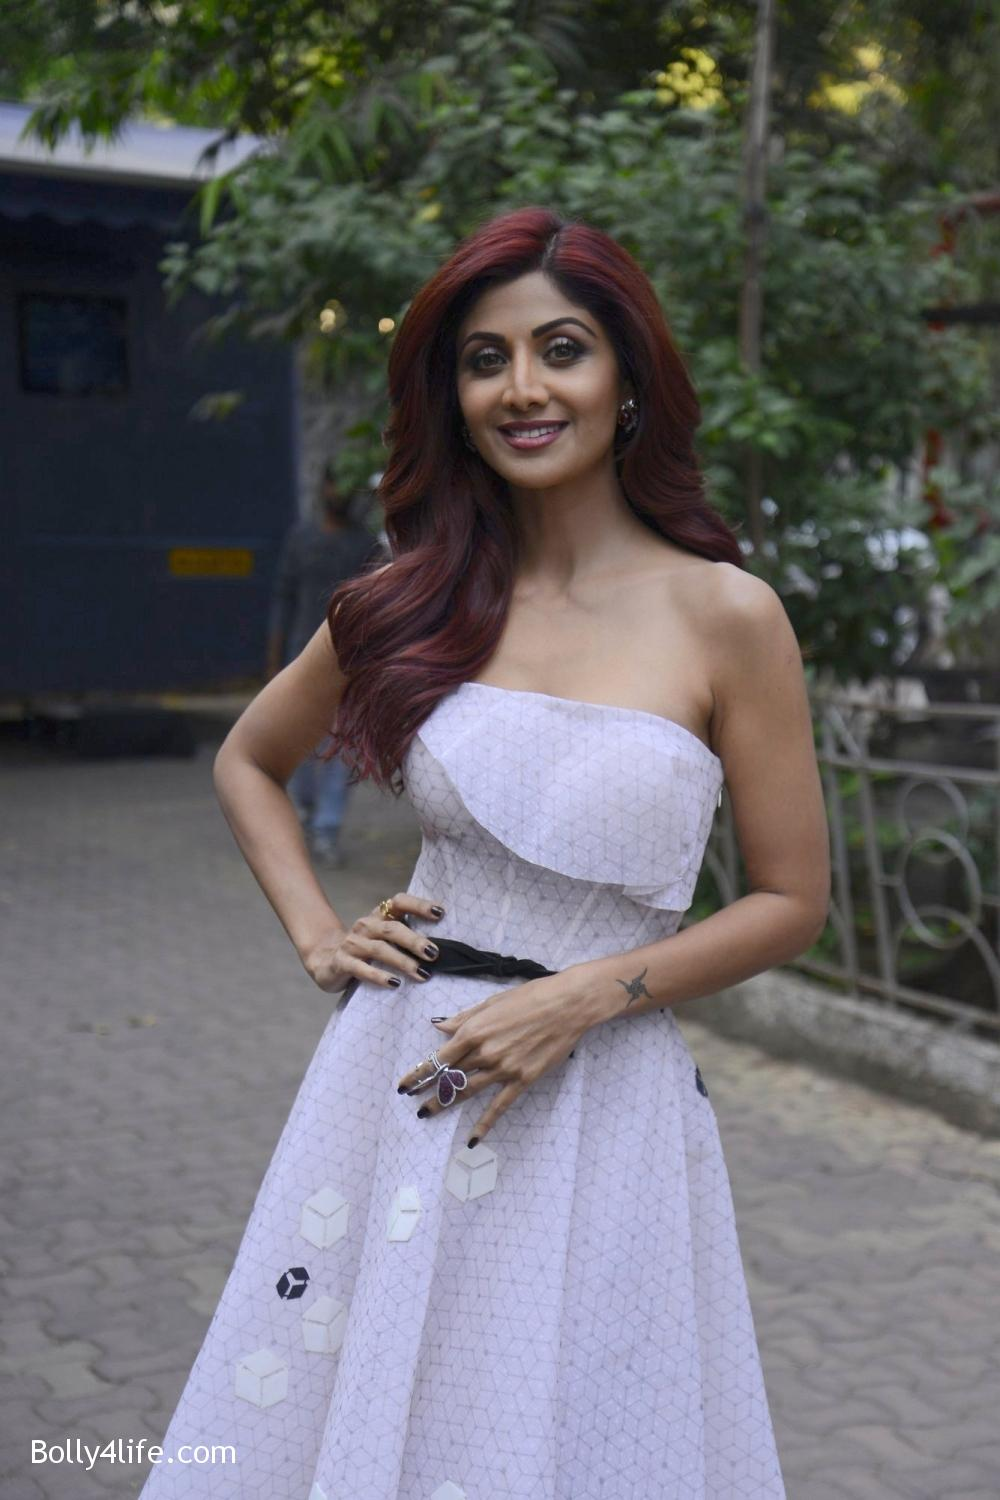 Shilpa-Shetty-during-on-the-sets-of-Sony-TV-reality-show-Super-Dancer-3.jpg